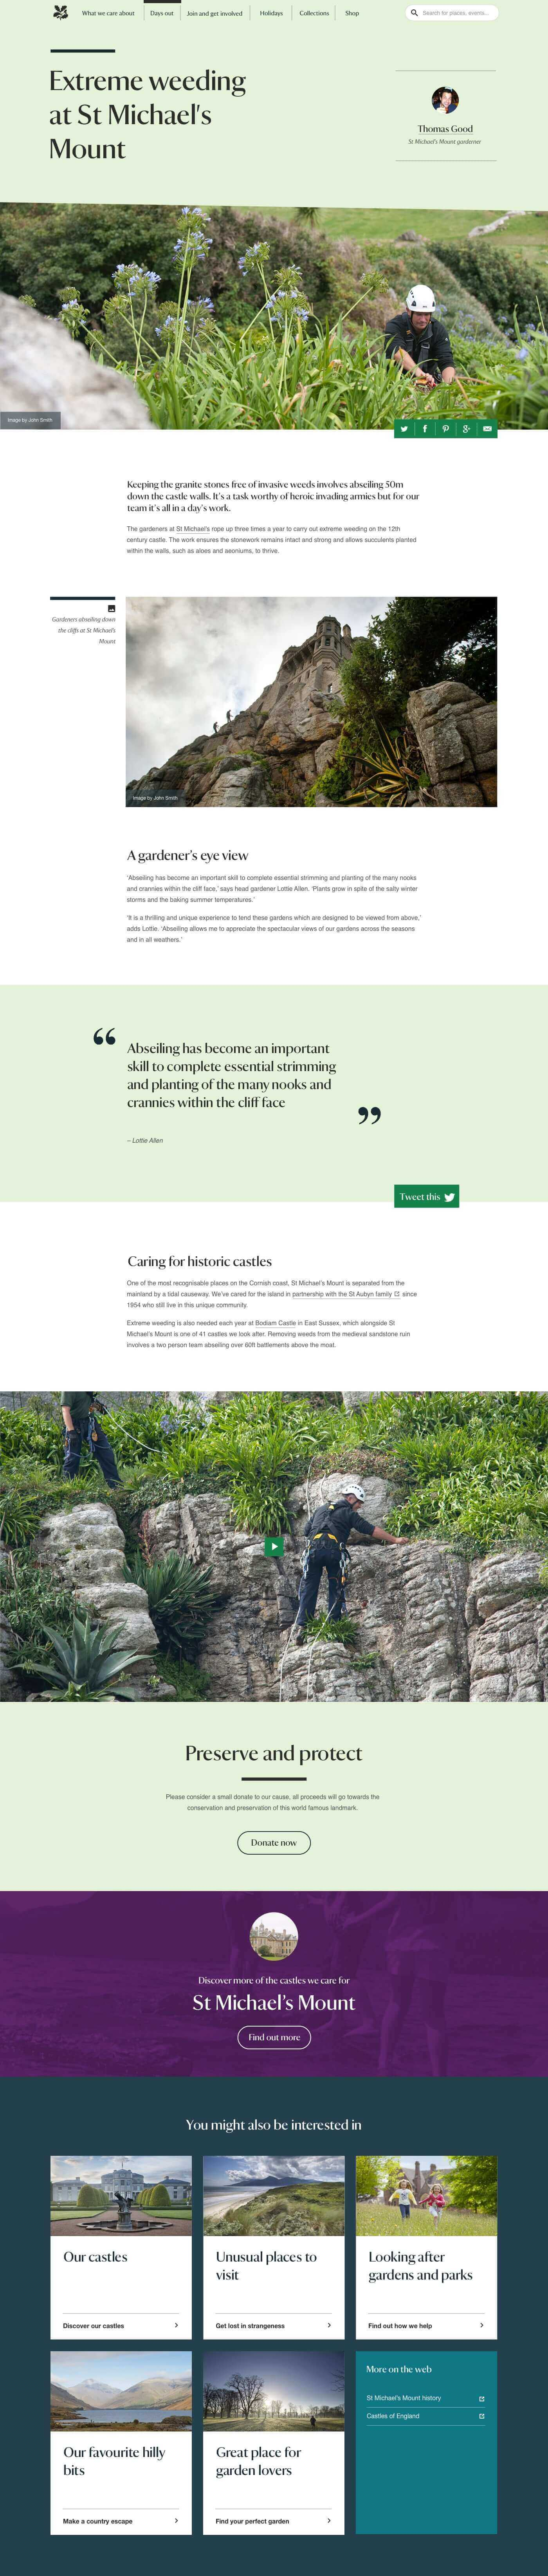 NT_feature_responsive_website_20150119_Large